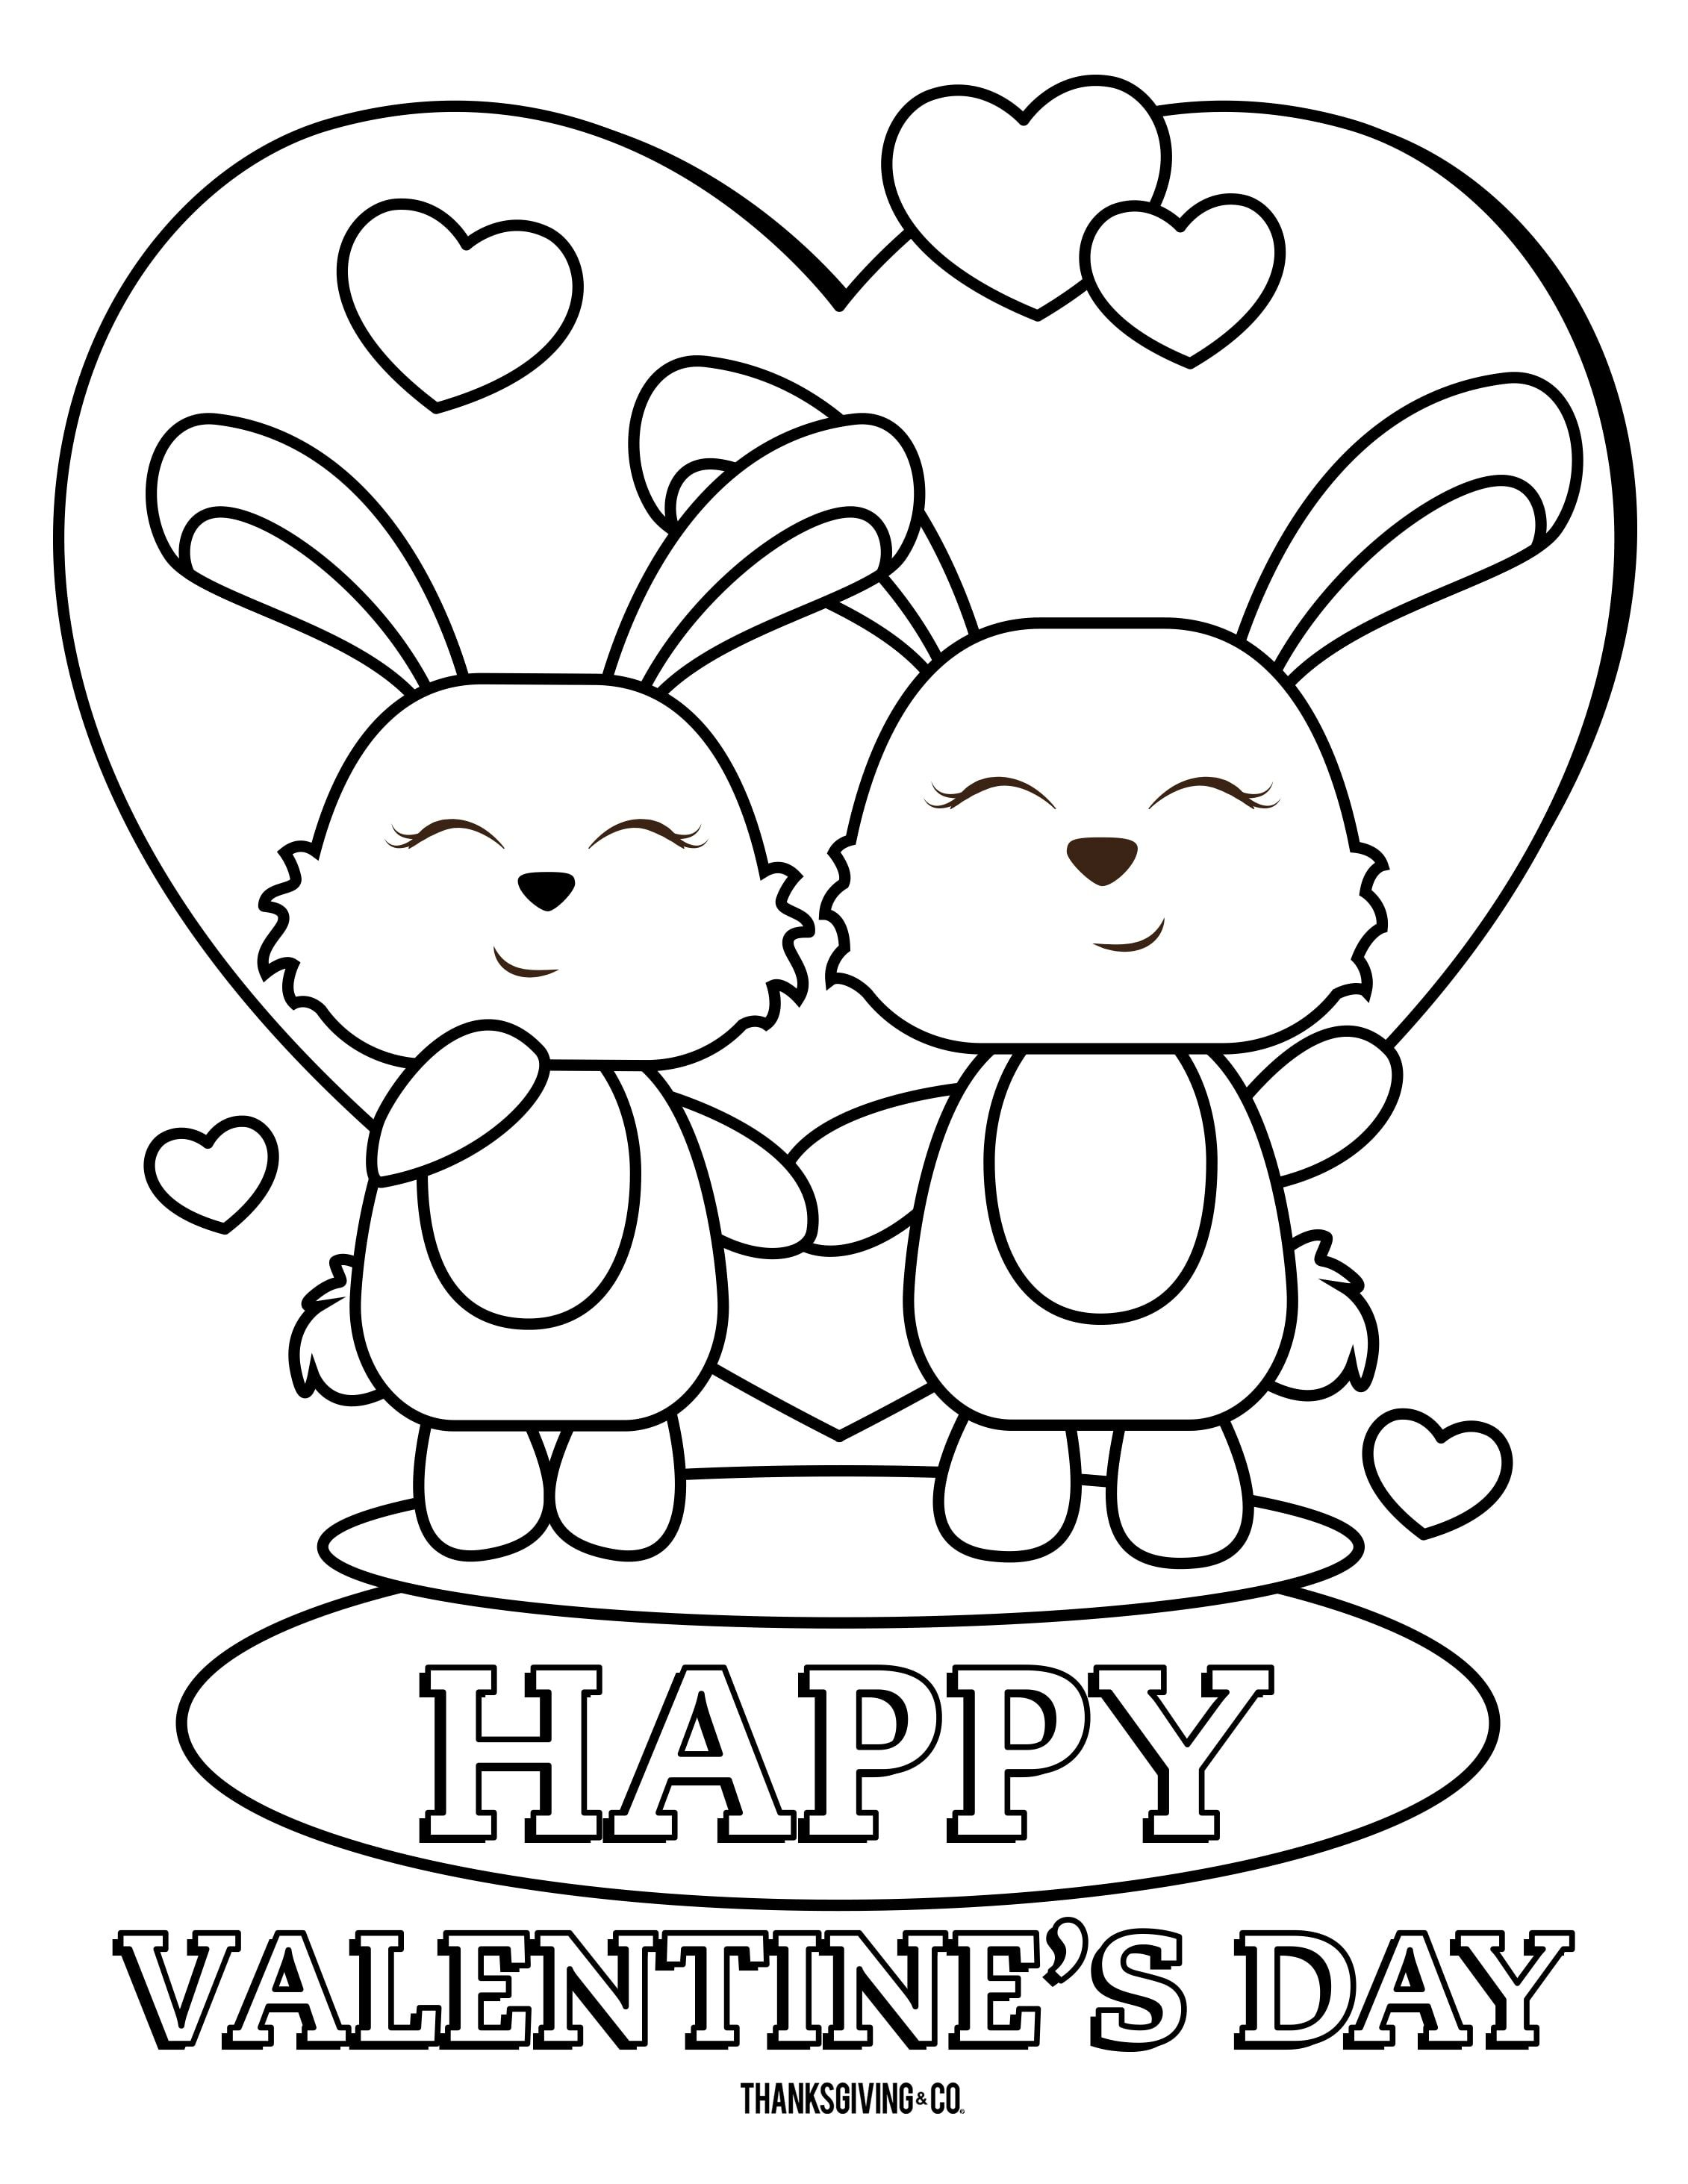 4 Free Valentine S Day Coloring Pages For Kids Bunny Coloring Pages Valentines Day Coloring Page Valentine Coloring Pages